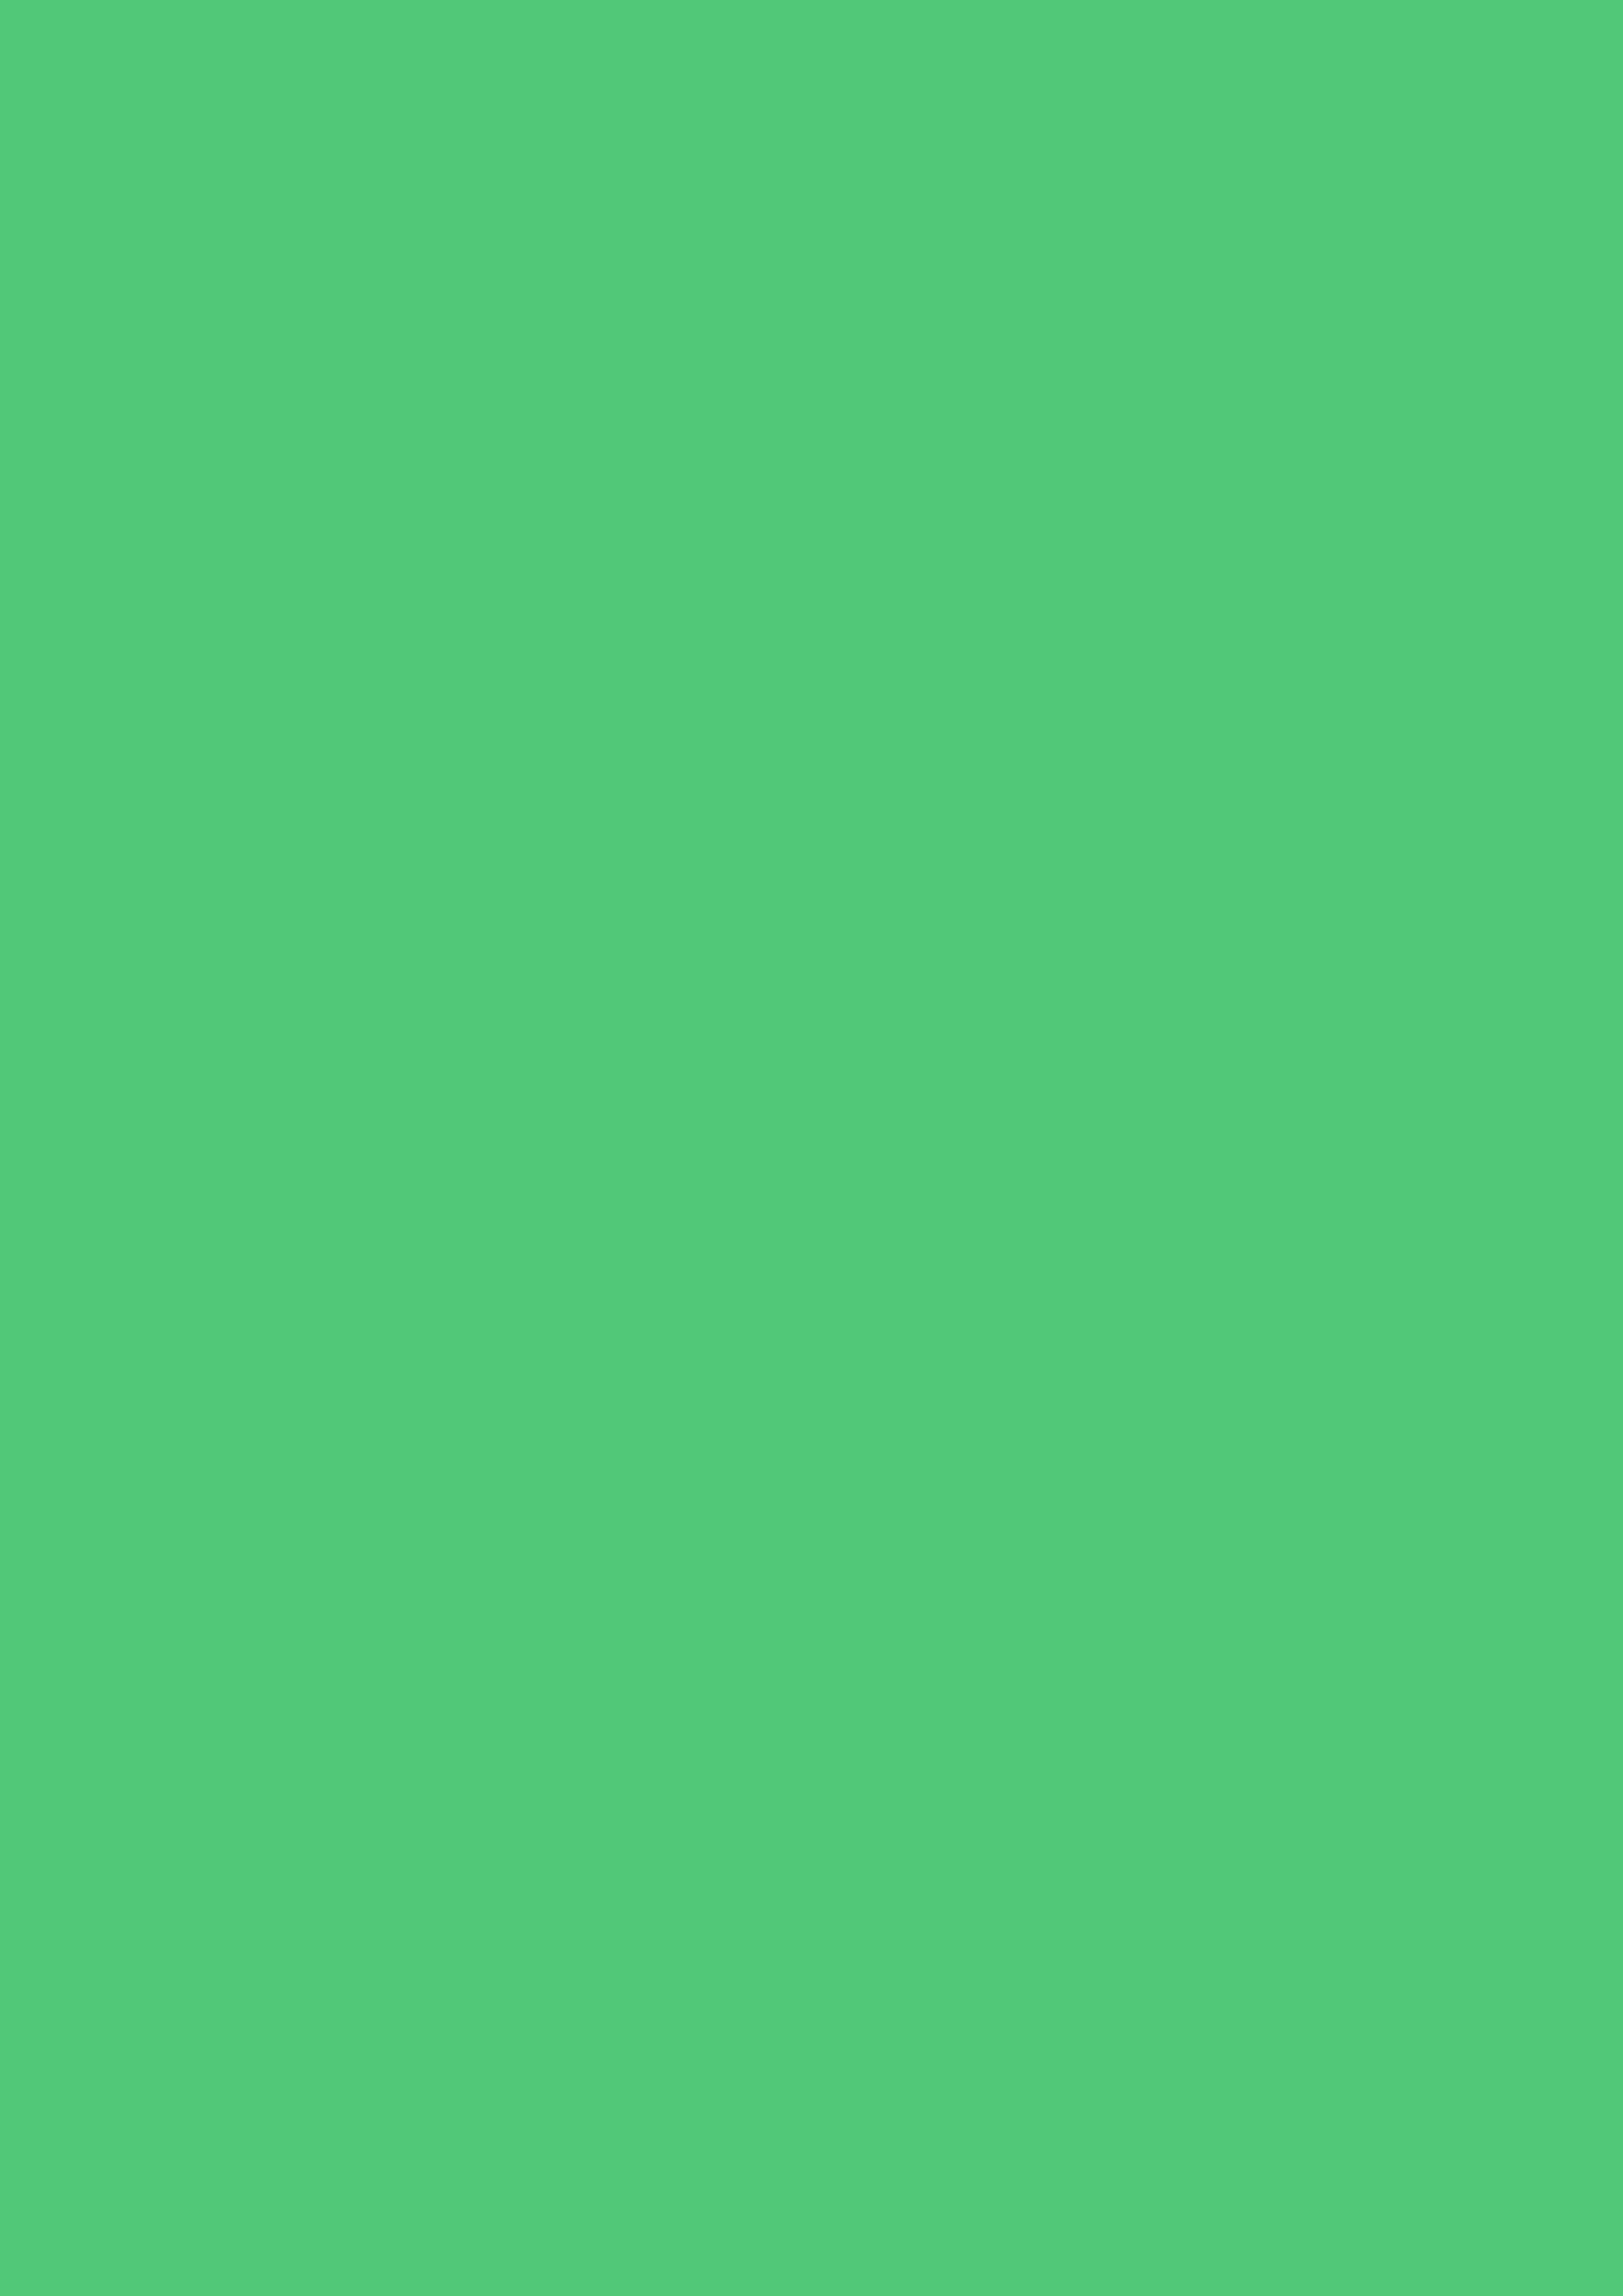 2480x3508 Emerald Solid Color Background